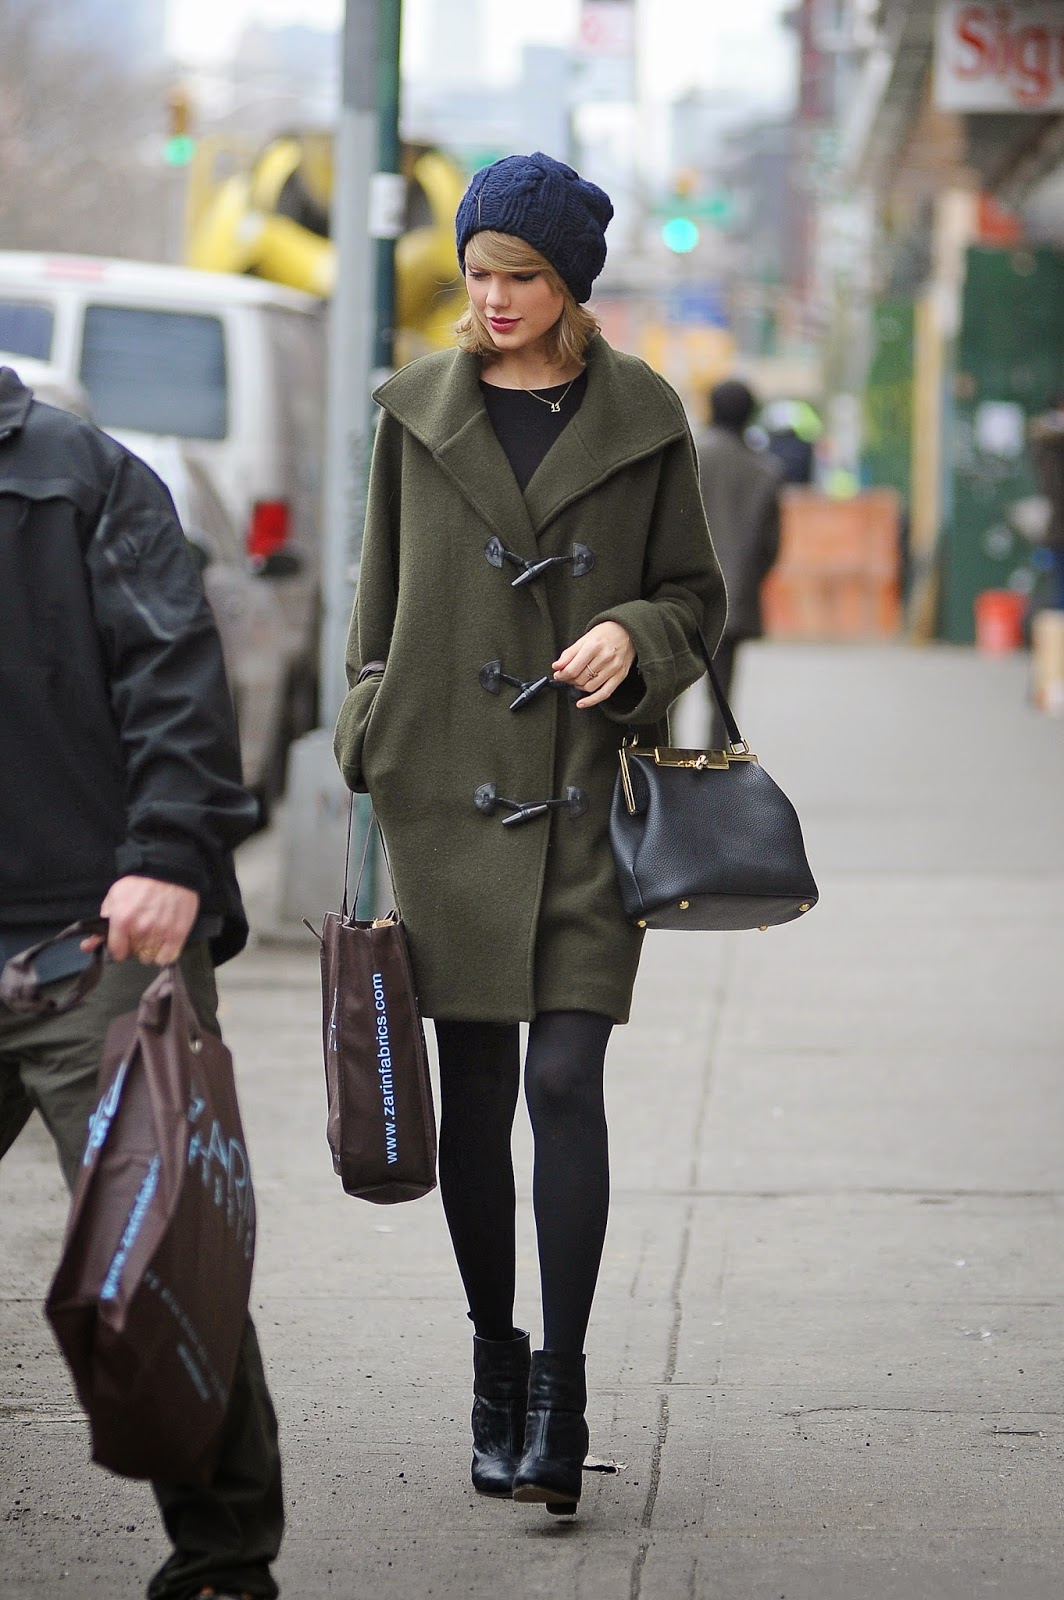 Taylor Swift wearing a duffle coat, Fashion and Cookies, fashion blogger